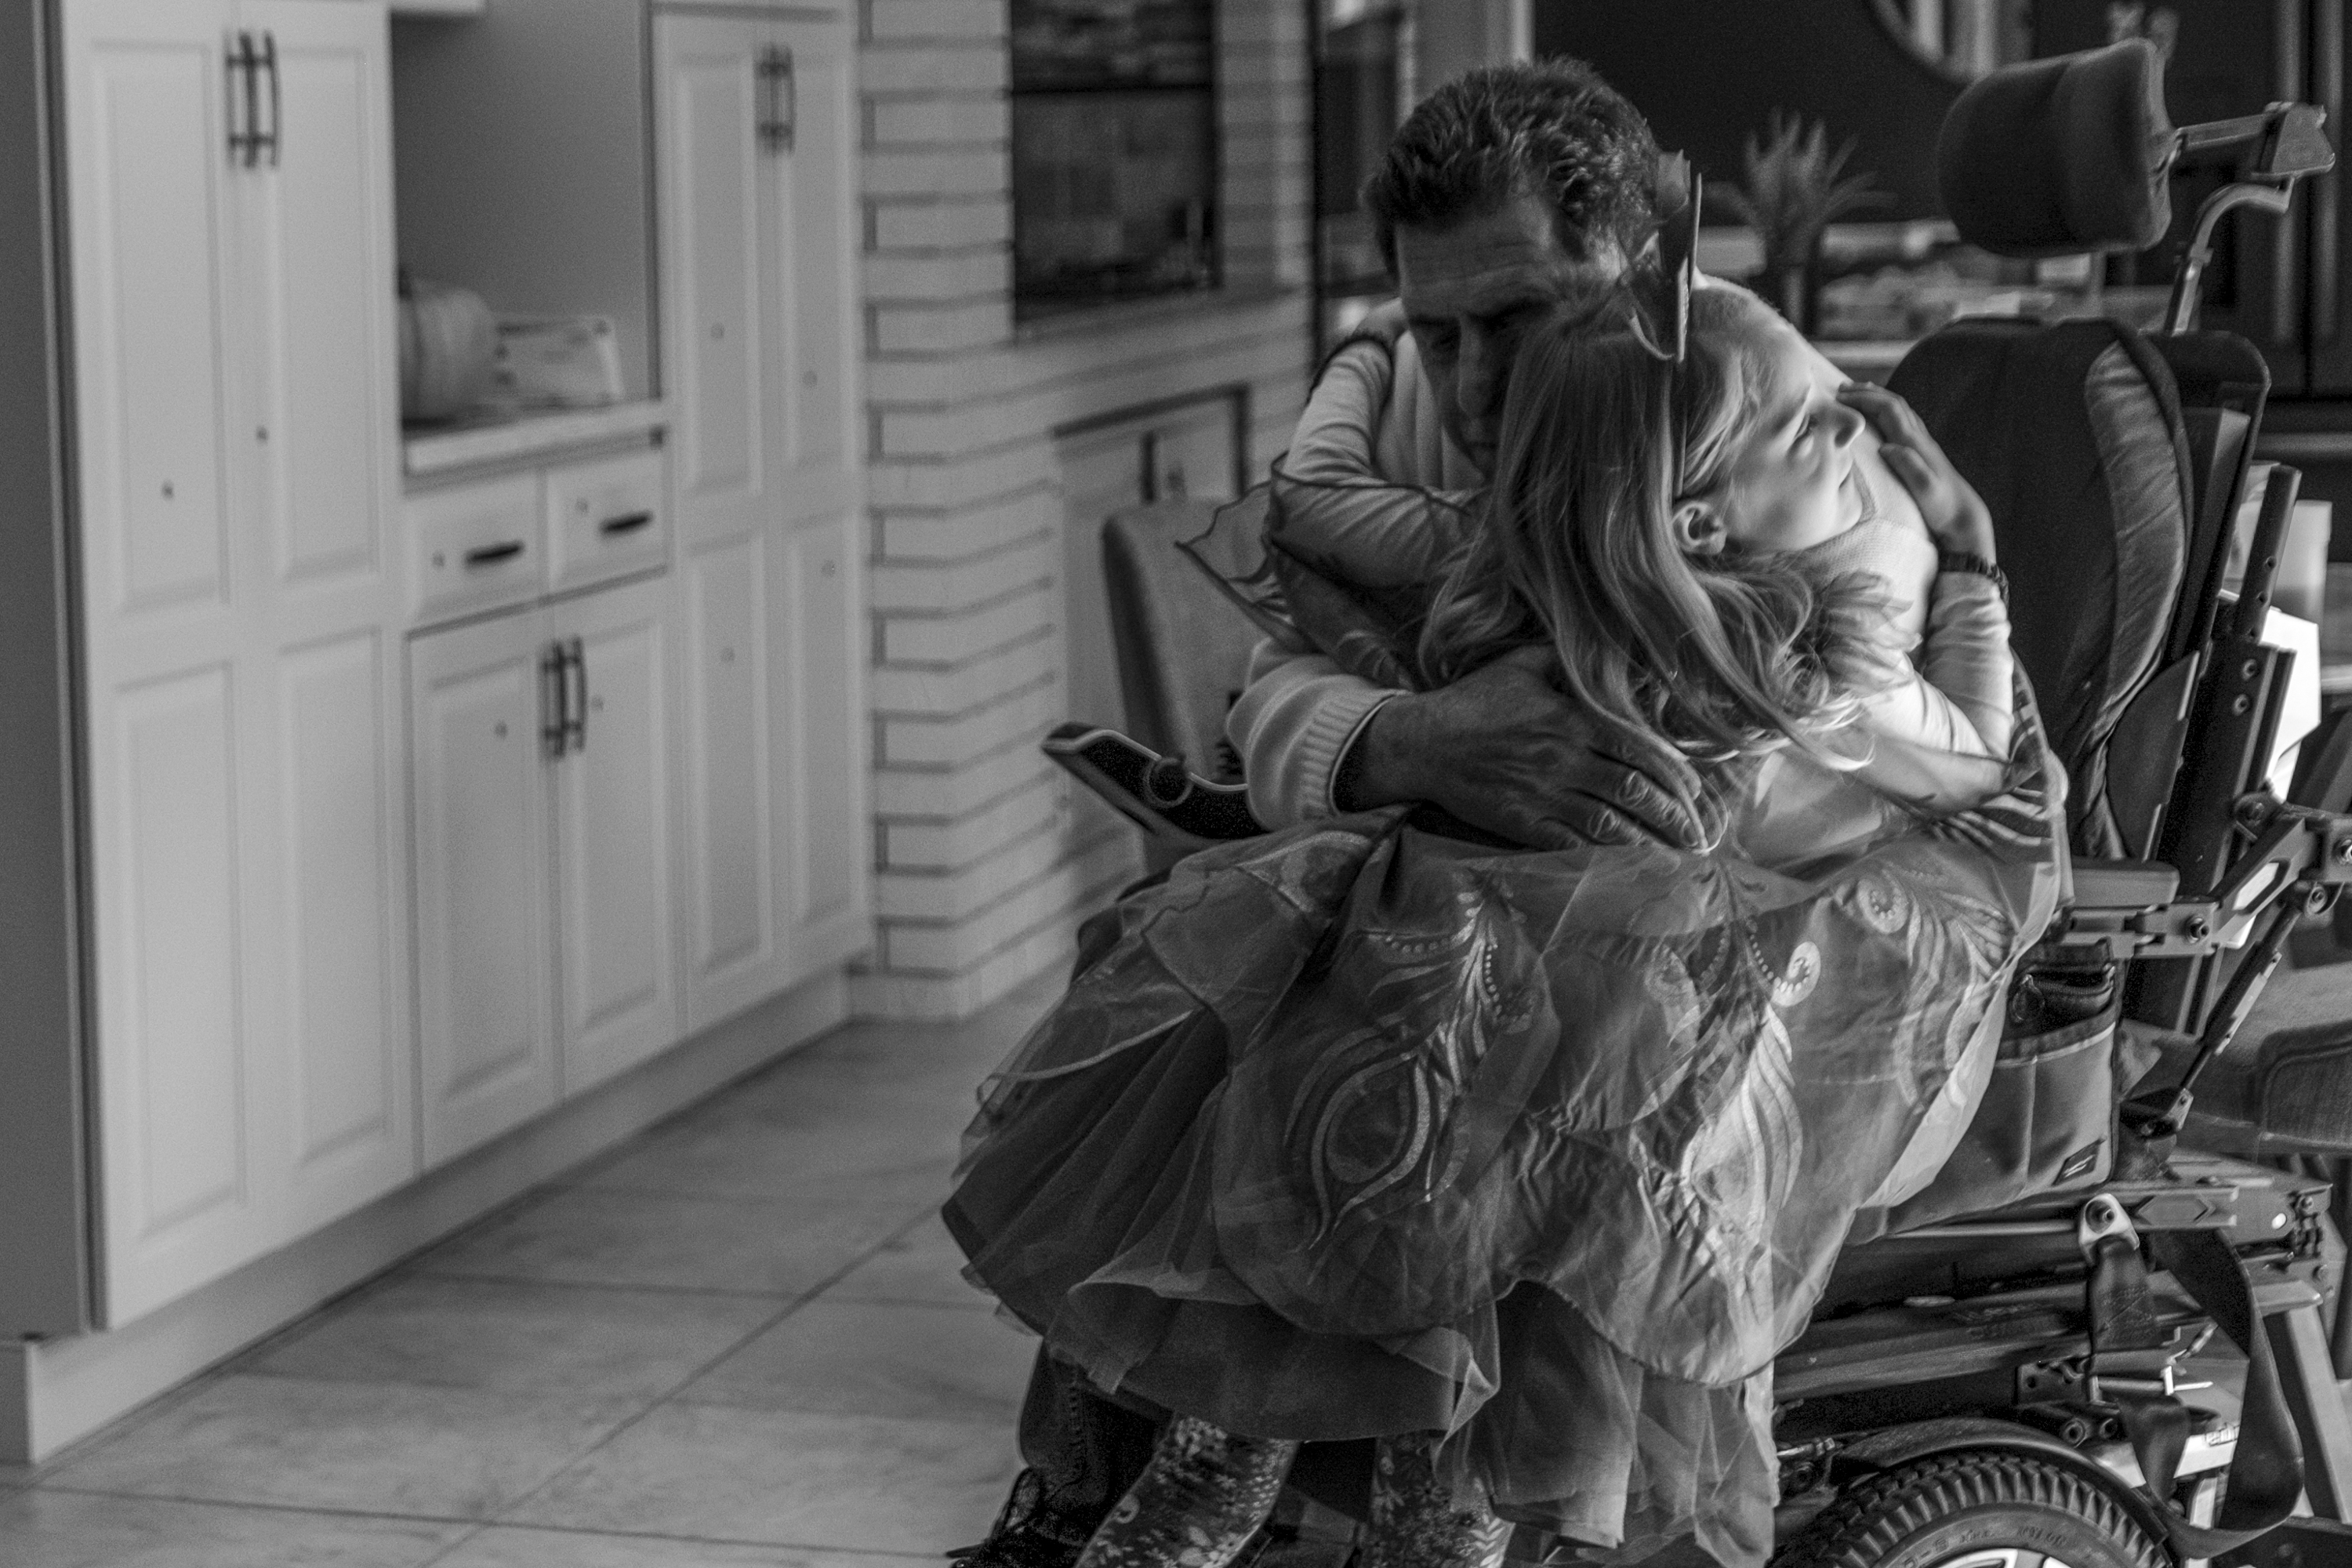 October 18th, 2020. Joseph Pagano's granddaughter hugs him after tiring herself out being a peacock and showing off her feathers.